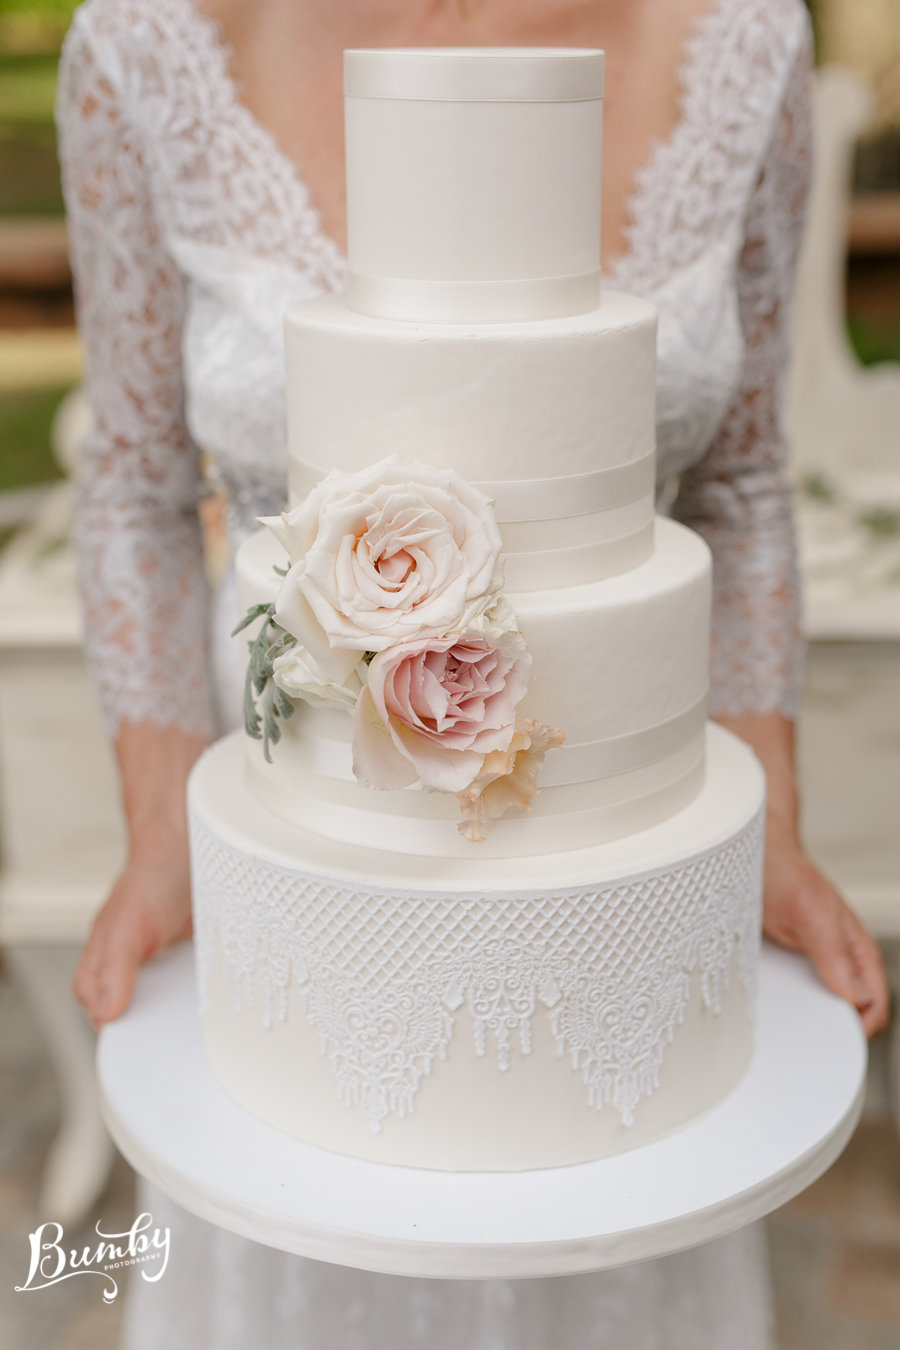 All Ivory wedding cake with lace detailing